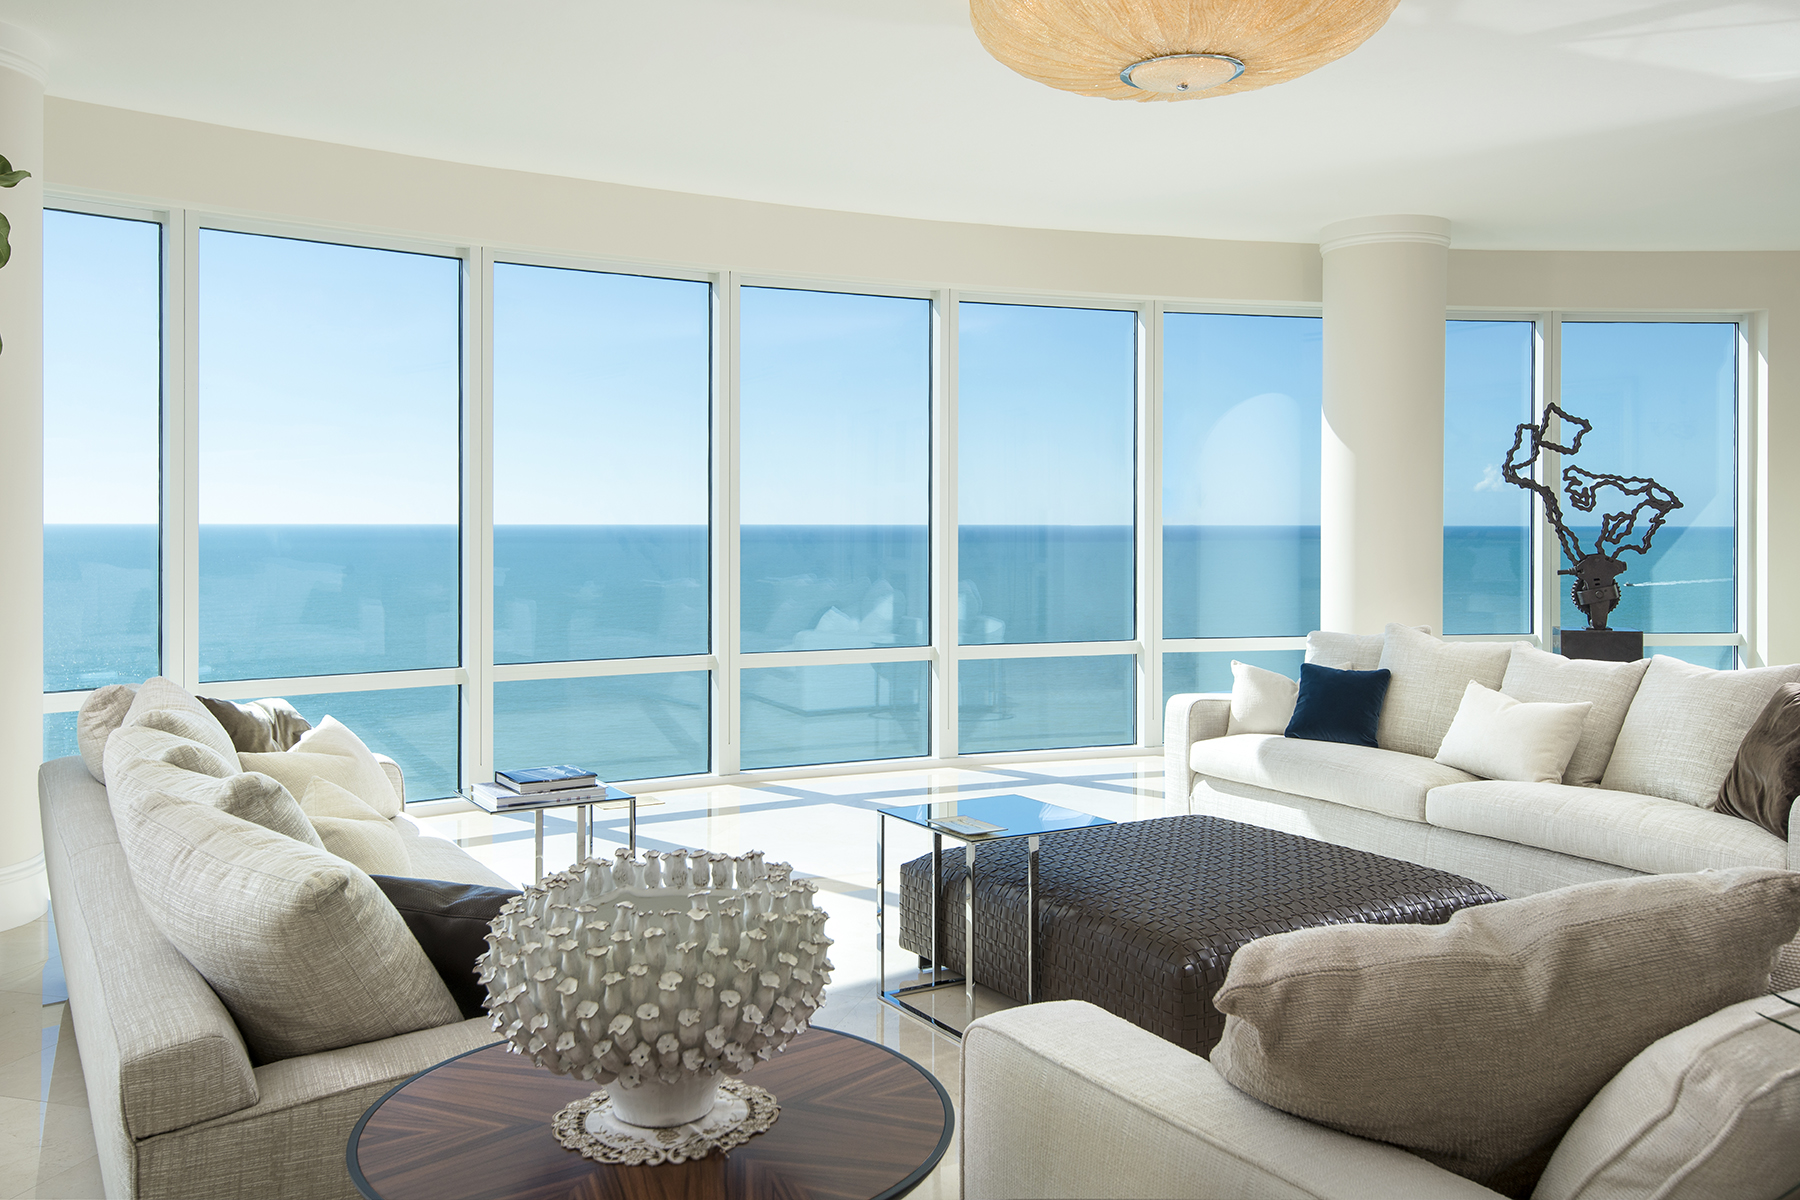 Condominium for Sale at PARK SHORE - REGENT 4101 Gulf Shore Blvd N 12S Naples, Florida 34103 United States